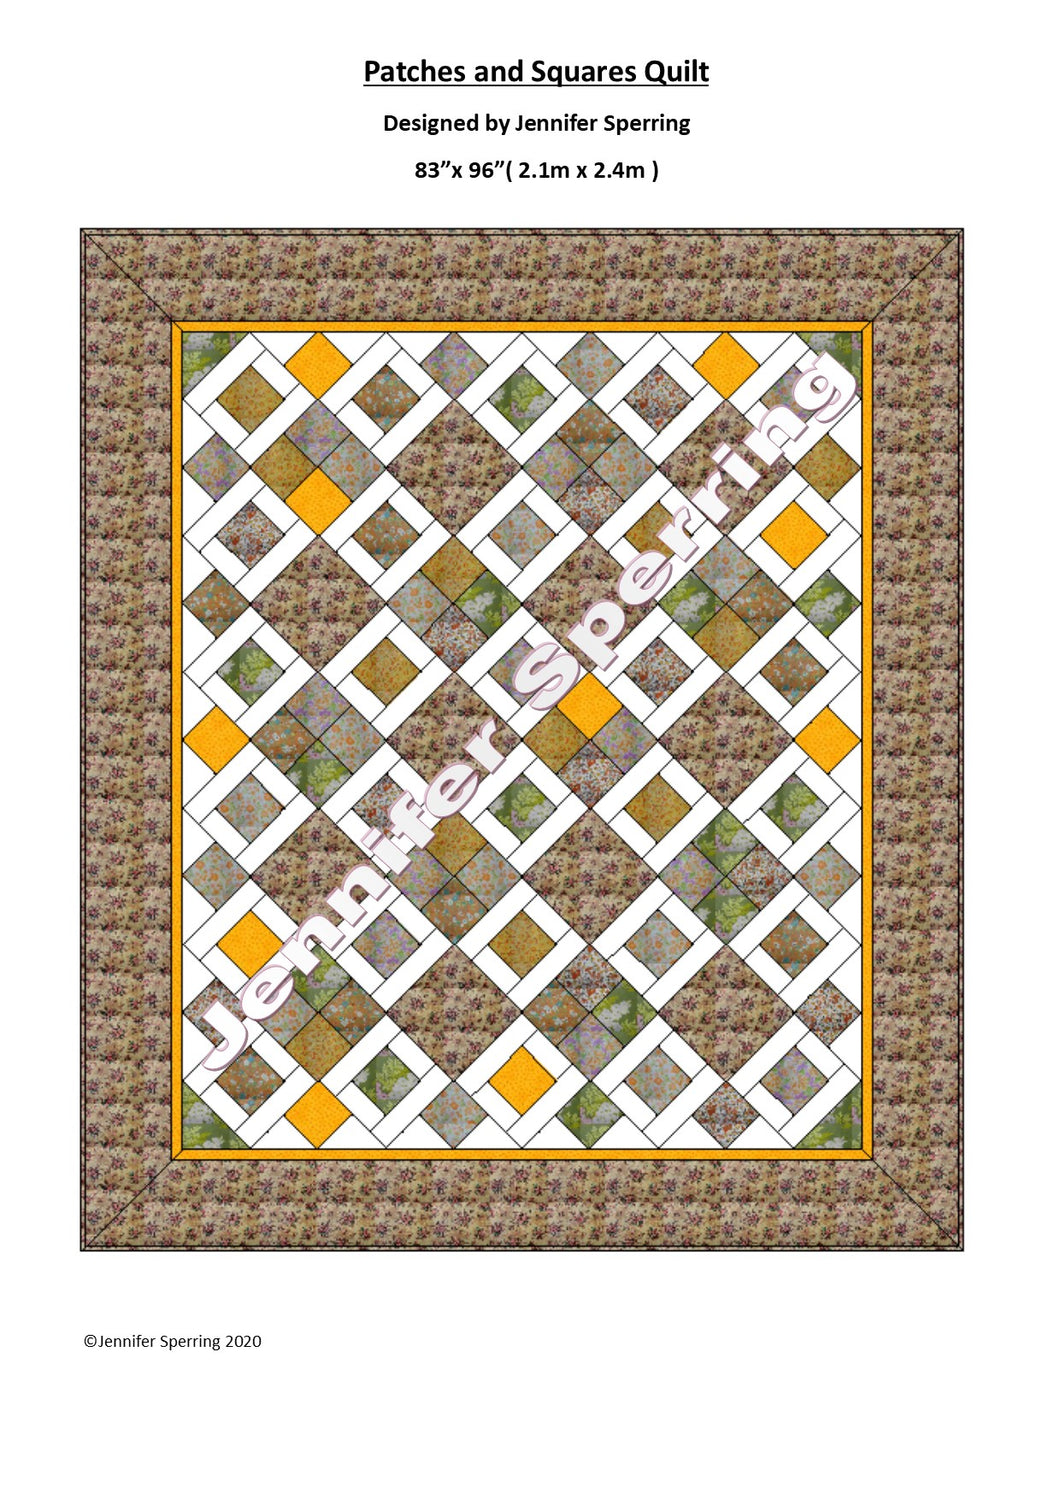 Patches & Squares Quilt Pattern & Kit